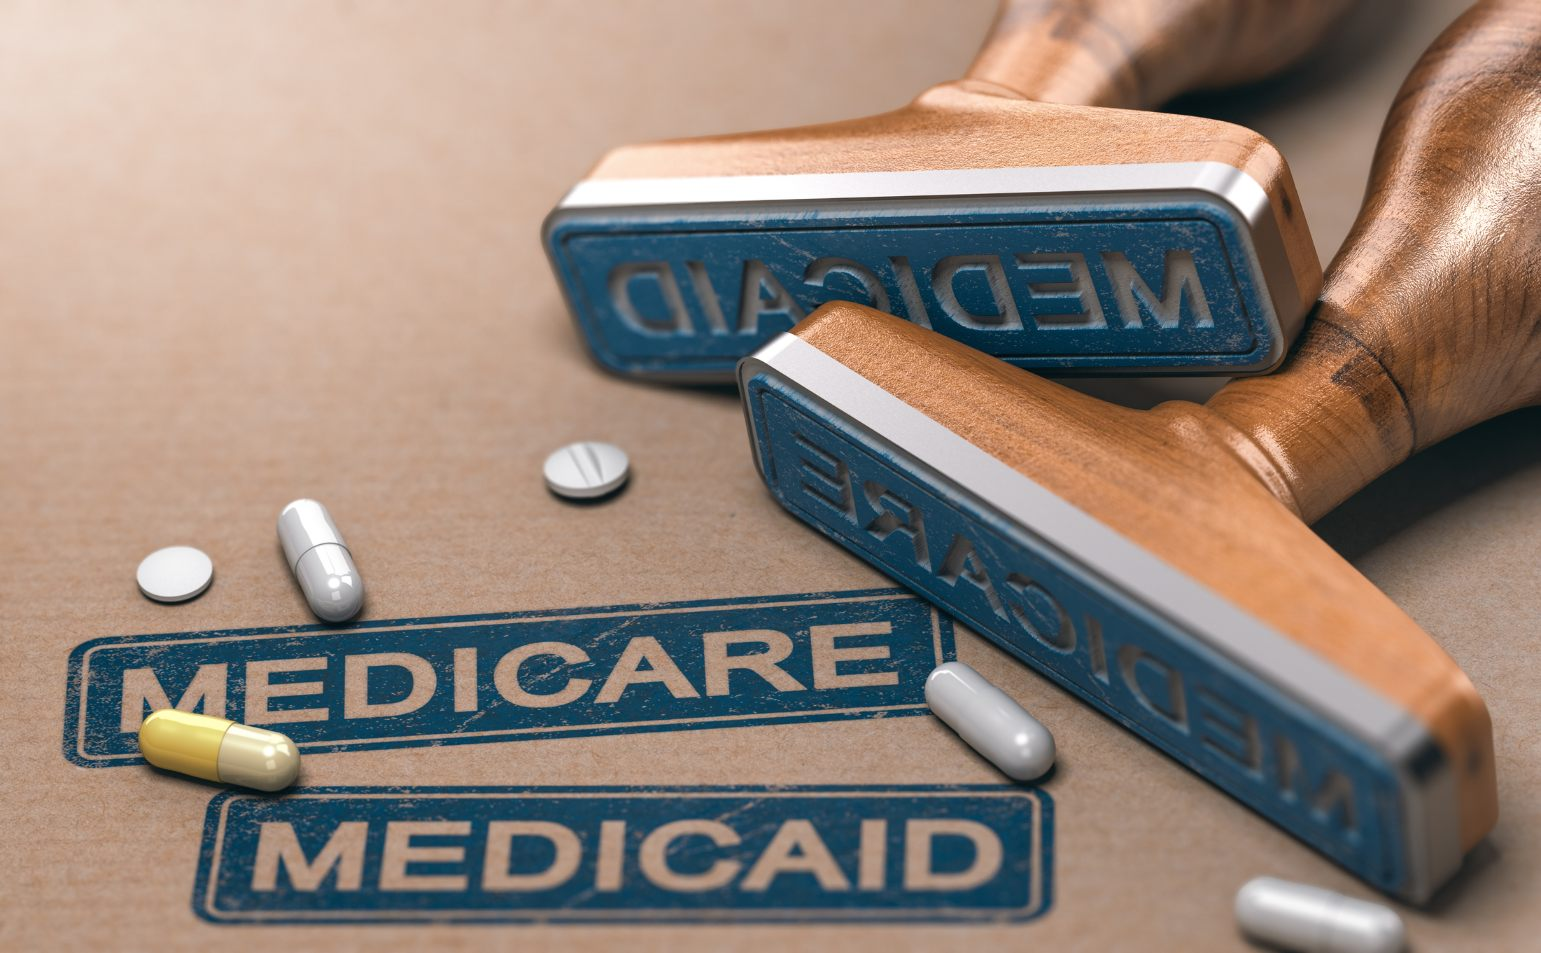 Medicare Medicaid Difference